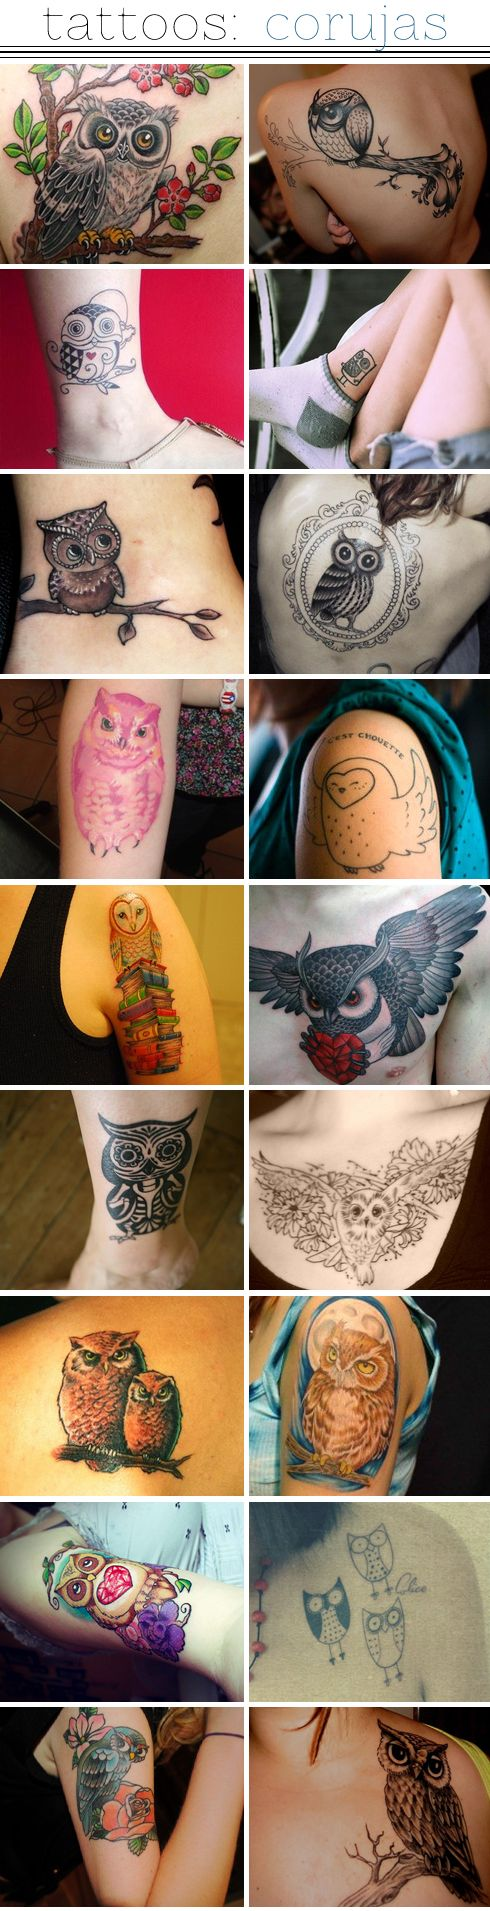 owl tattoos - one of these people have an owl that looks just like mine. They are different but very similar. Third down on the left. Must be based off the same painting. WILD!